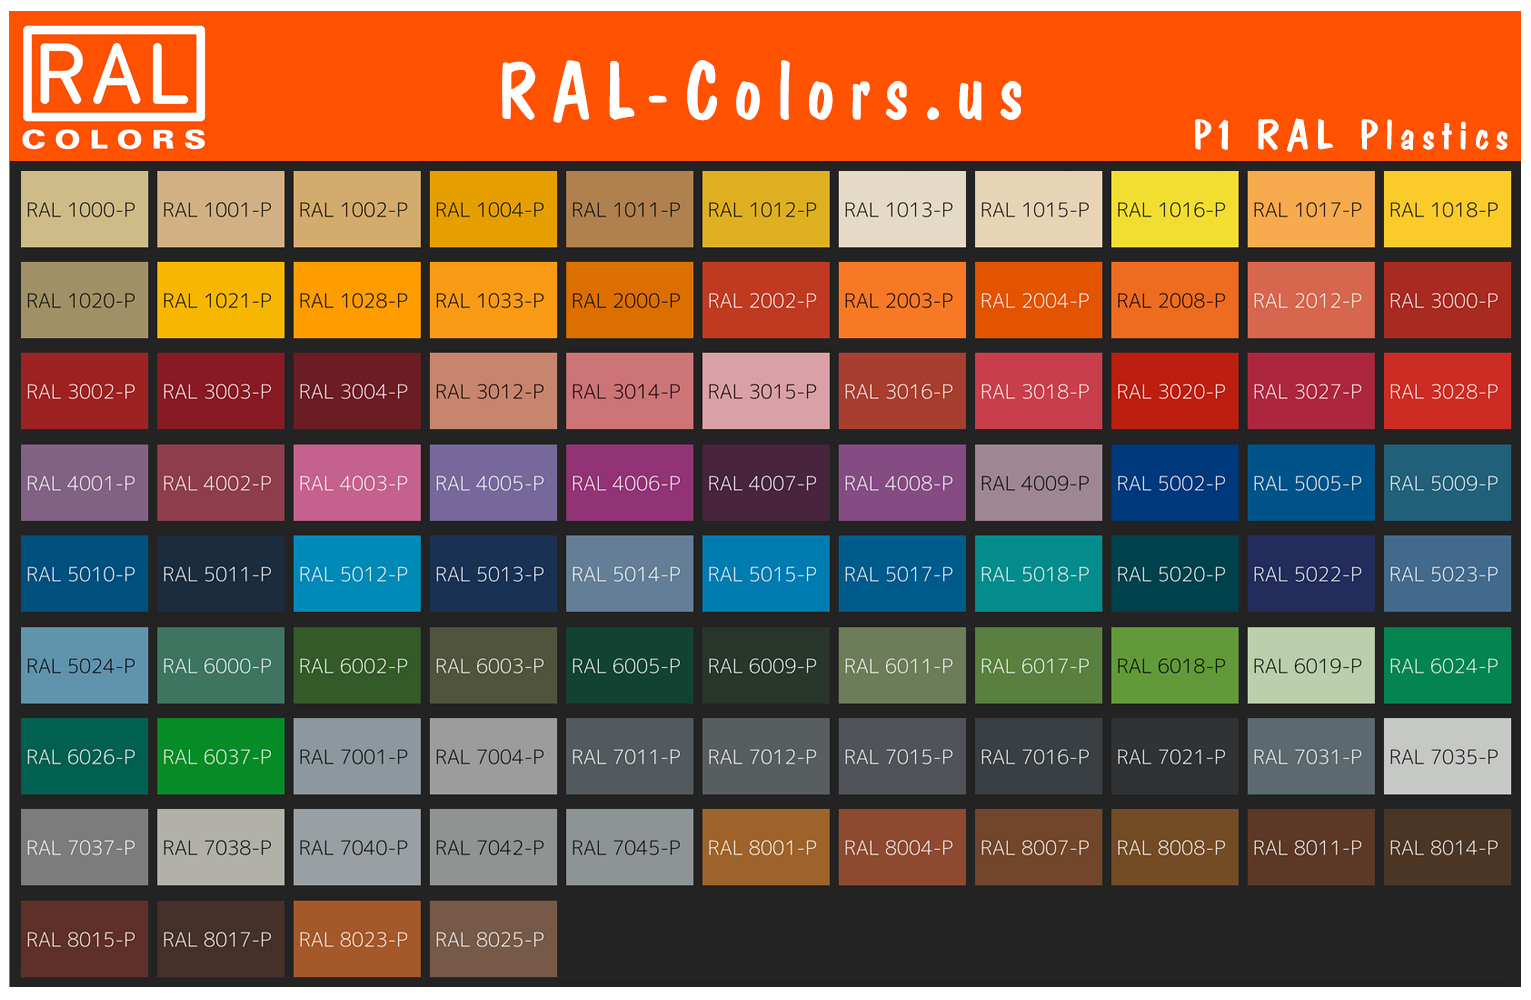 RAL Plastic P1 Color chart with names and RAL to RGB / CMYK conversion info